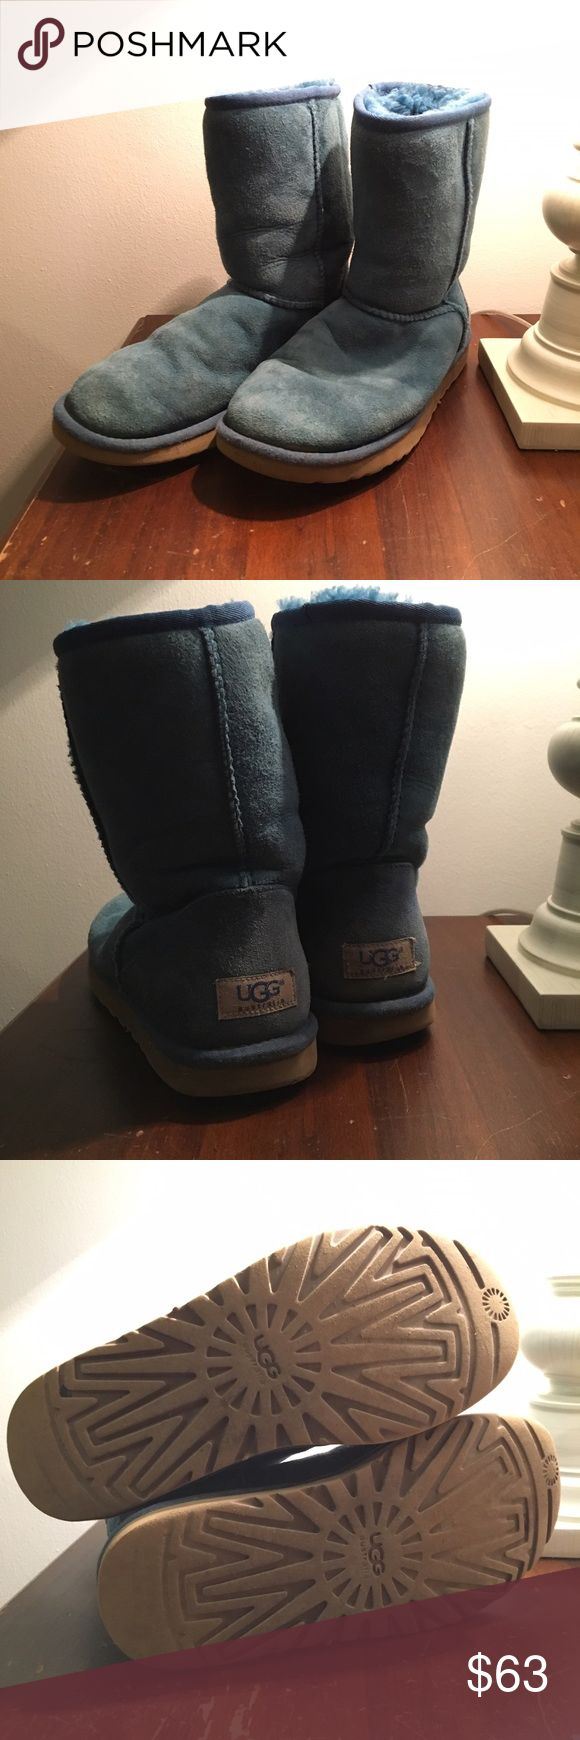 Real UGG Classic Short Boots Classic short teal UGG boots. Worn but in great condition! I love these boots, I just need to make room in my closet! UGG Shoes Winter & Rain Boots